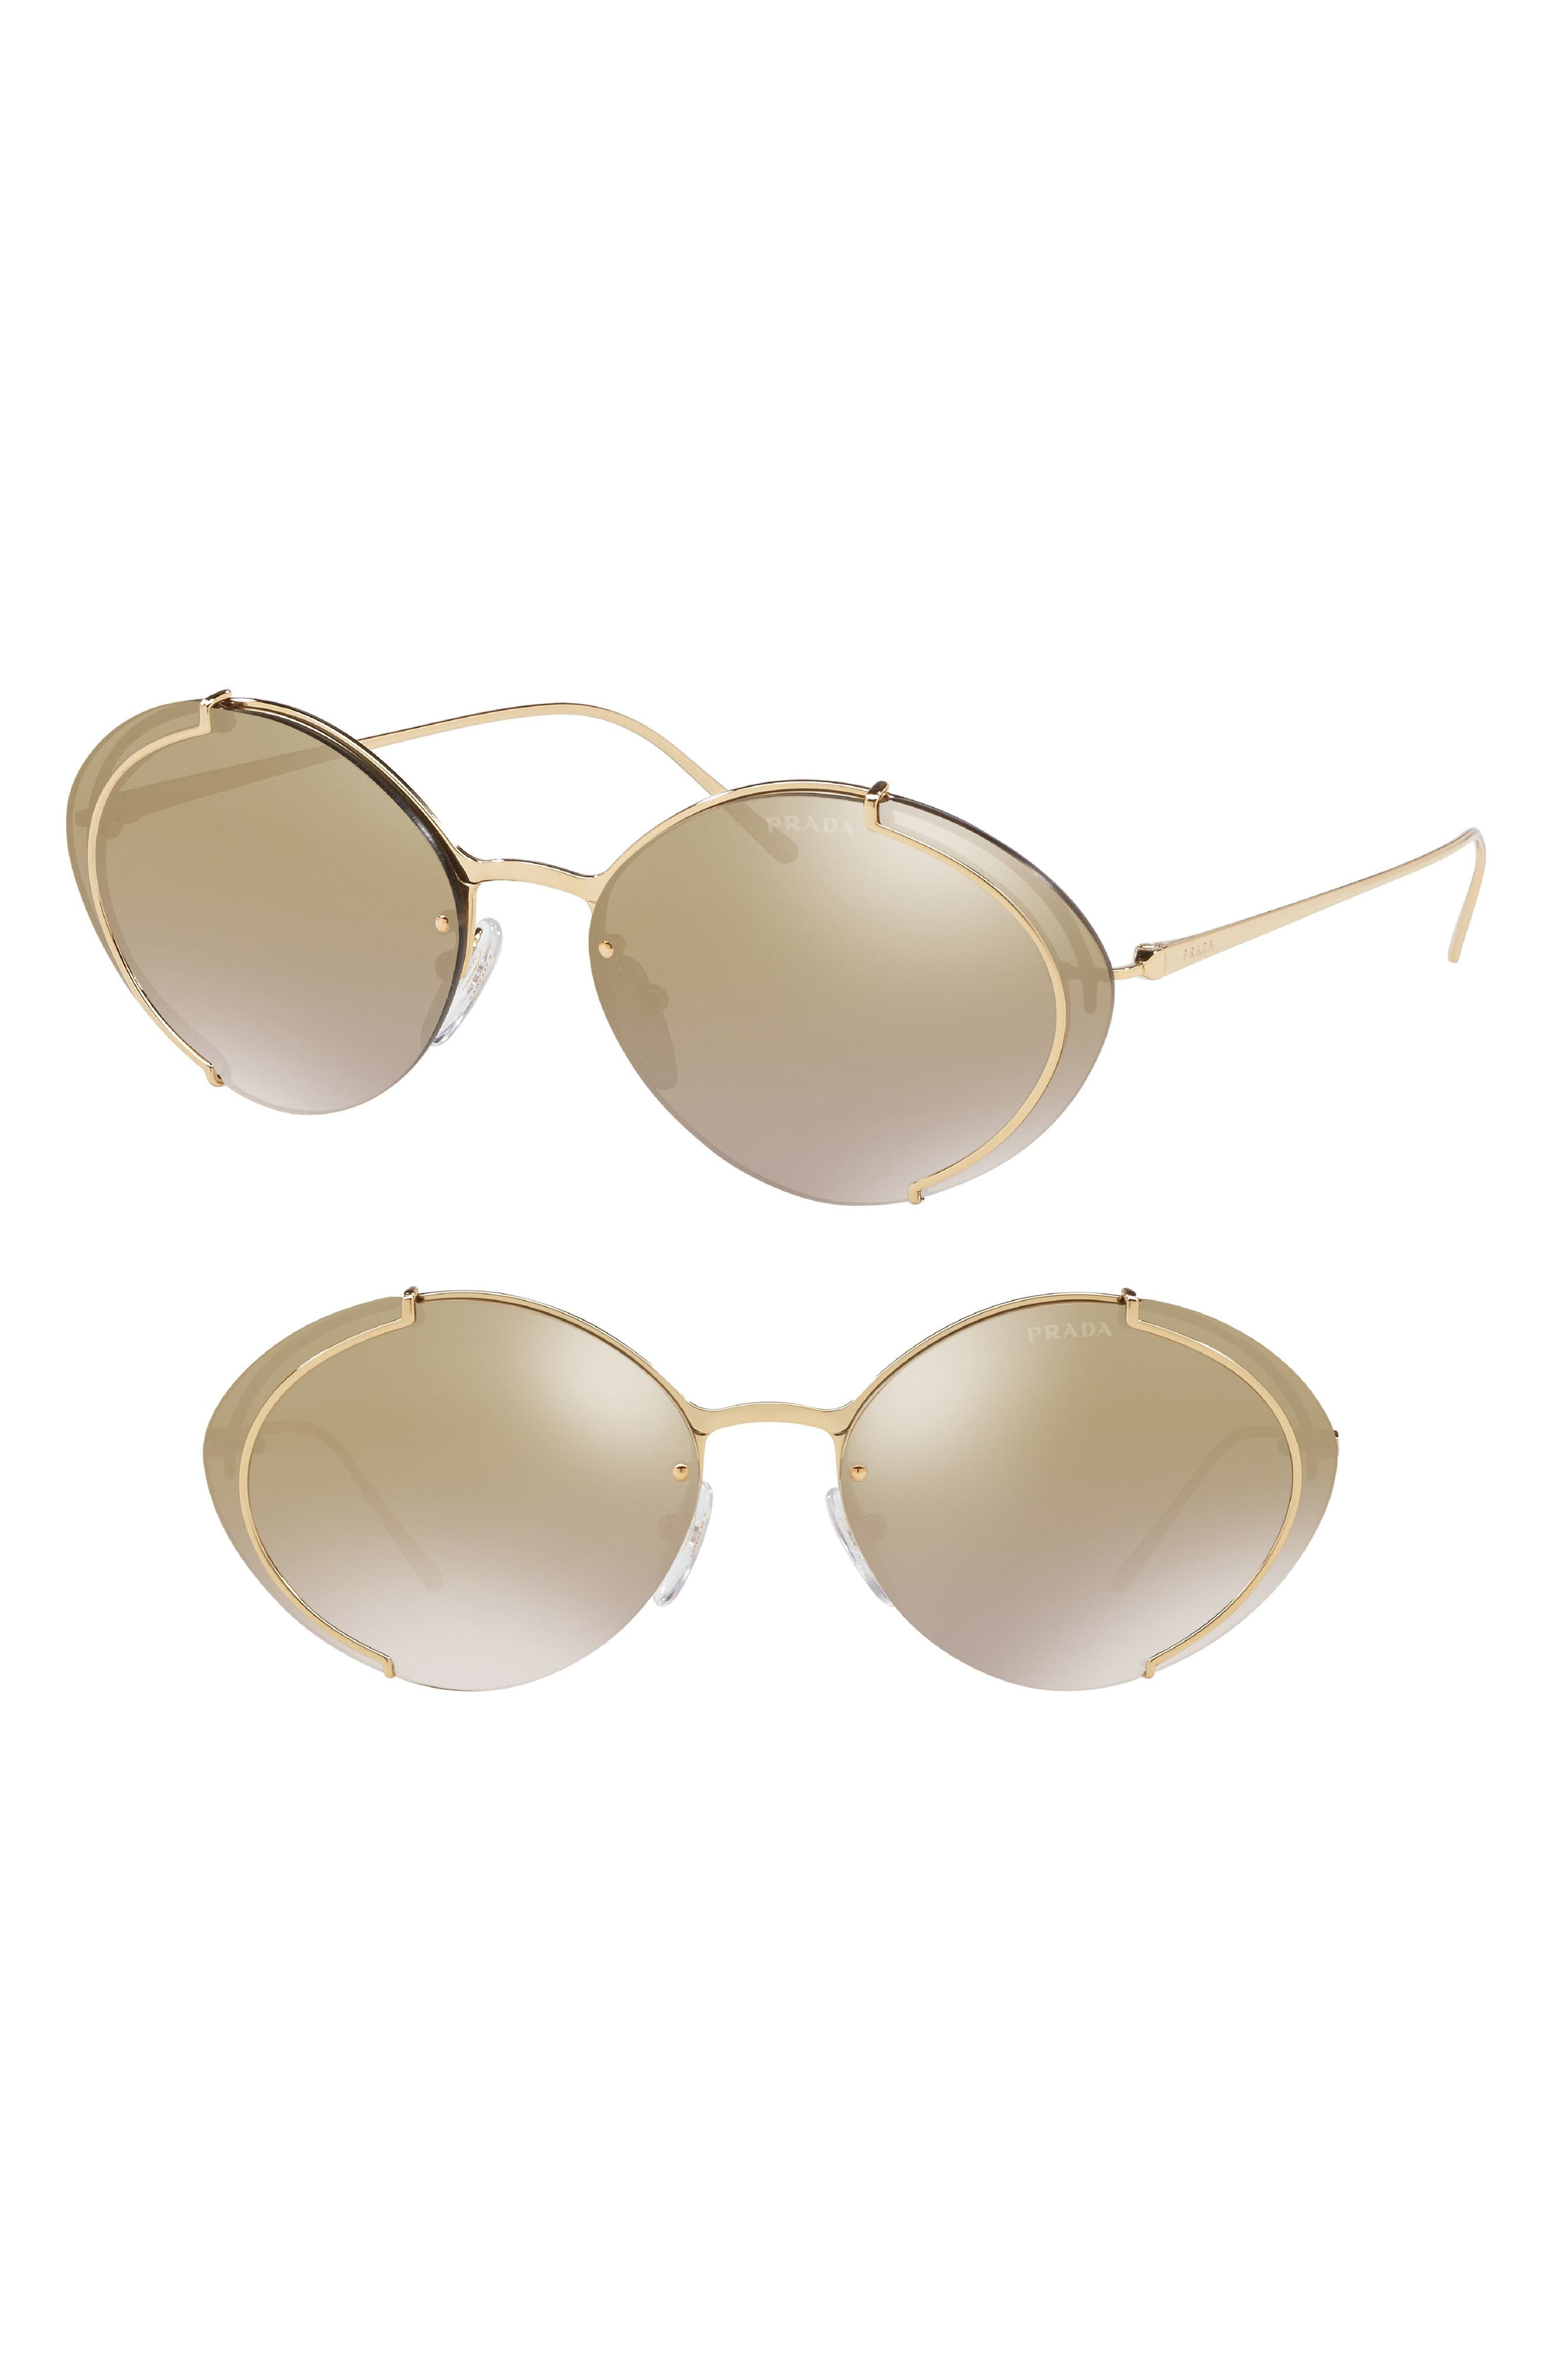 Evolution 63mm Oversize Rimless Oval Sunglasses,                             Main thumbnail 1, color,                             GOLD GRADIENT MIRROR